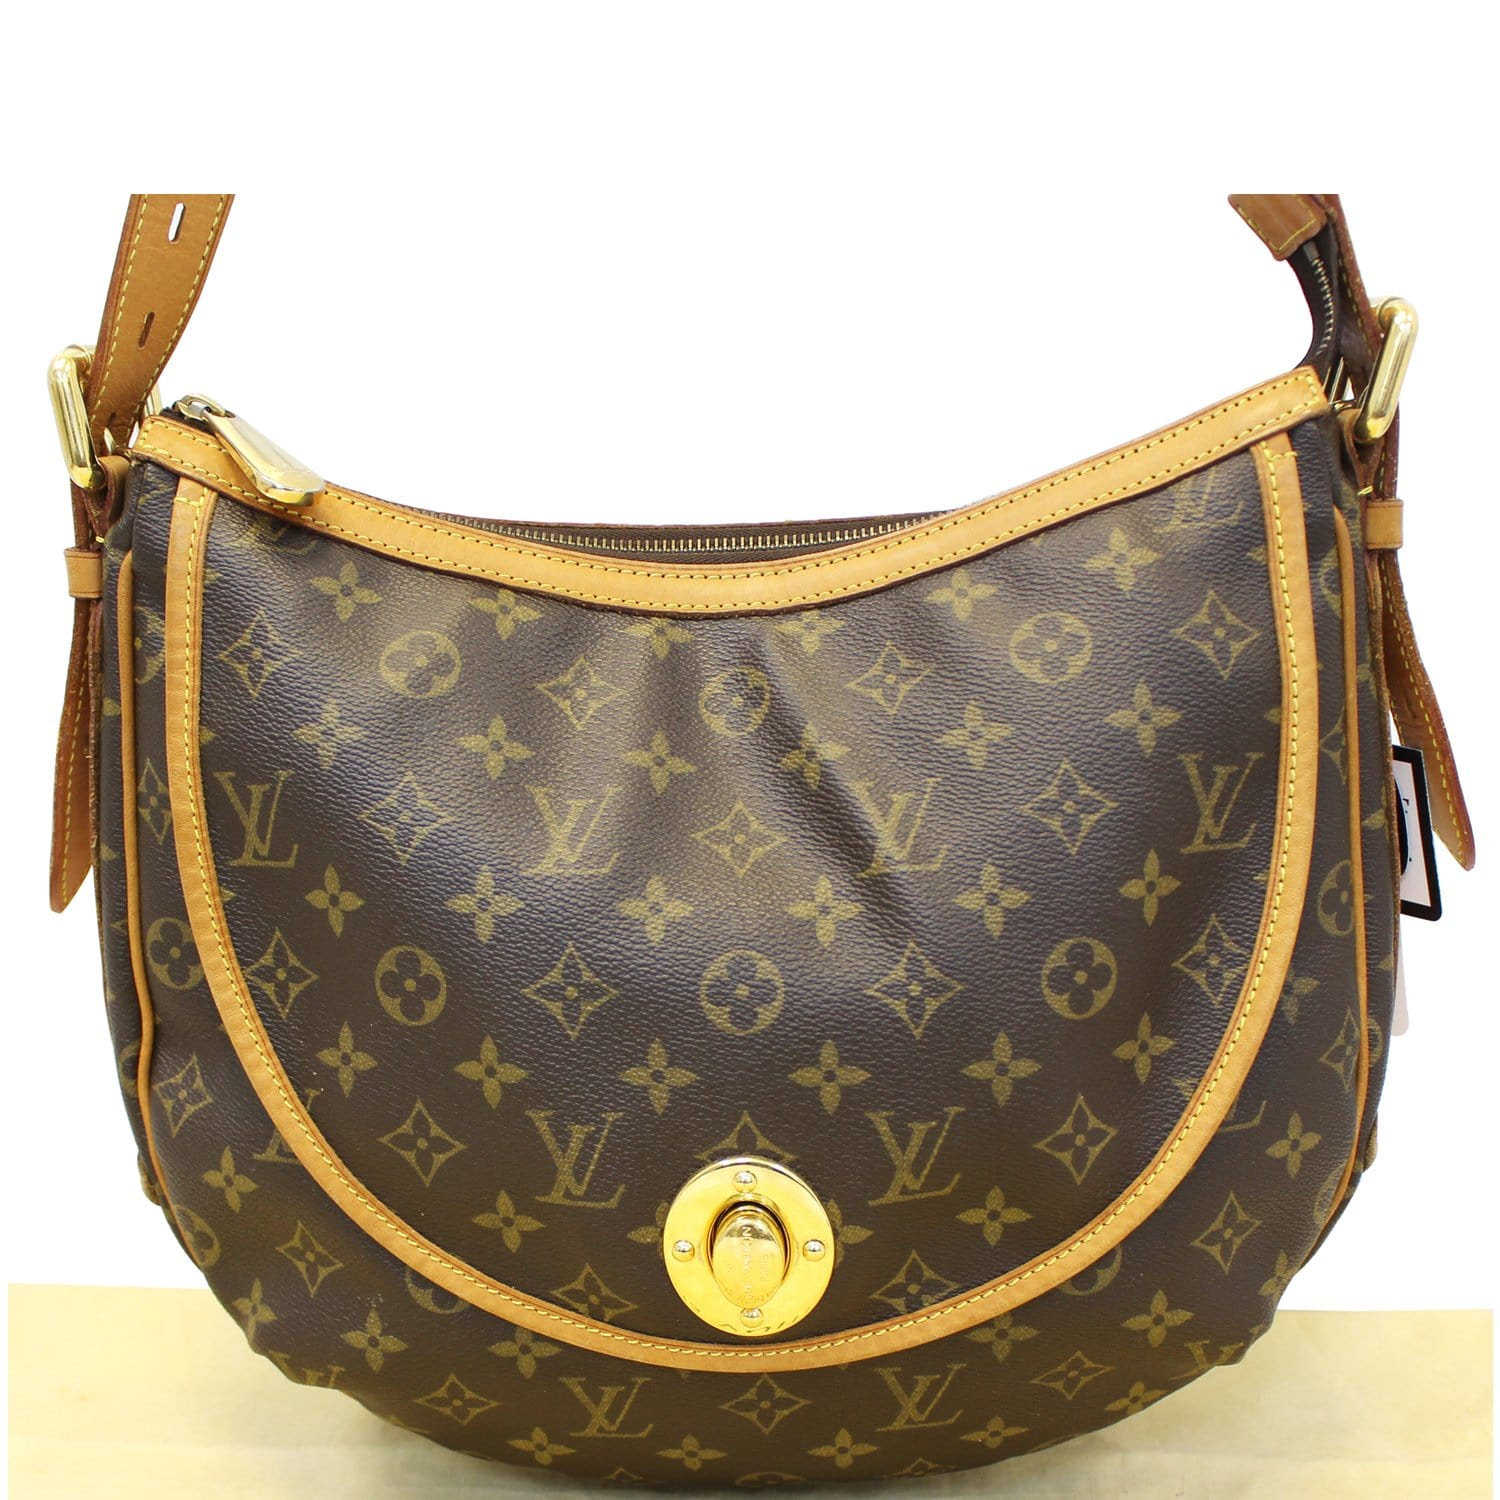 80bbfdba7ea0 LOUIS VUITTON Tulum GM Monogram Canvas Shoulder Bag-US